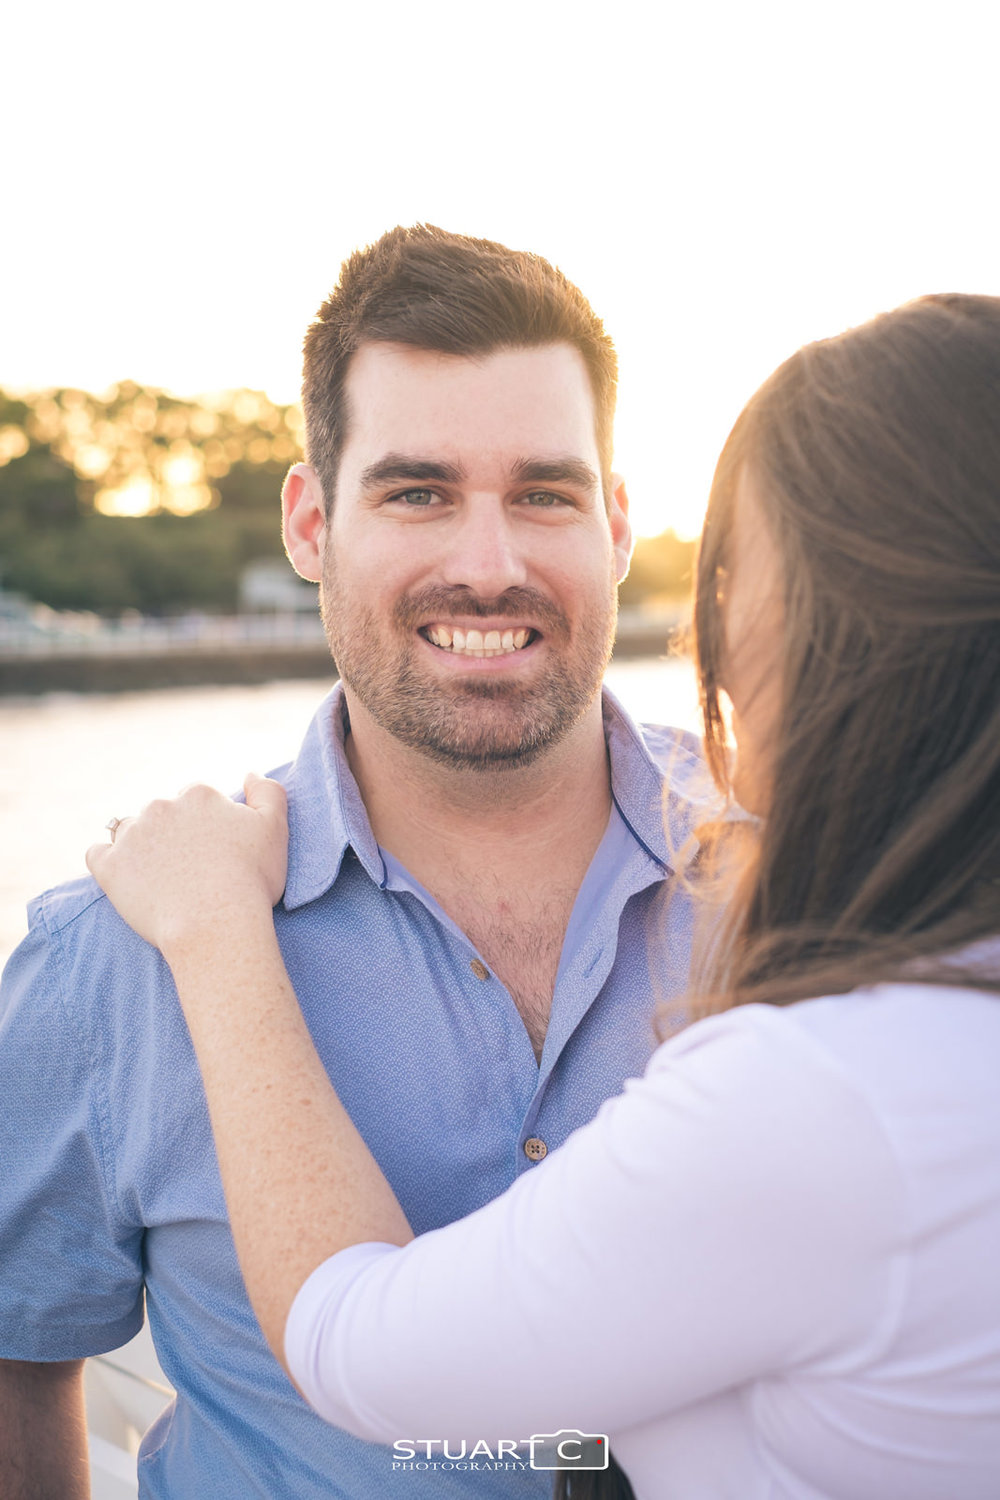 Close up portrait of guy standing on shorncliffe pier with his fiance standing looking towards him during afternoon engagement photo shoot